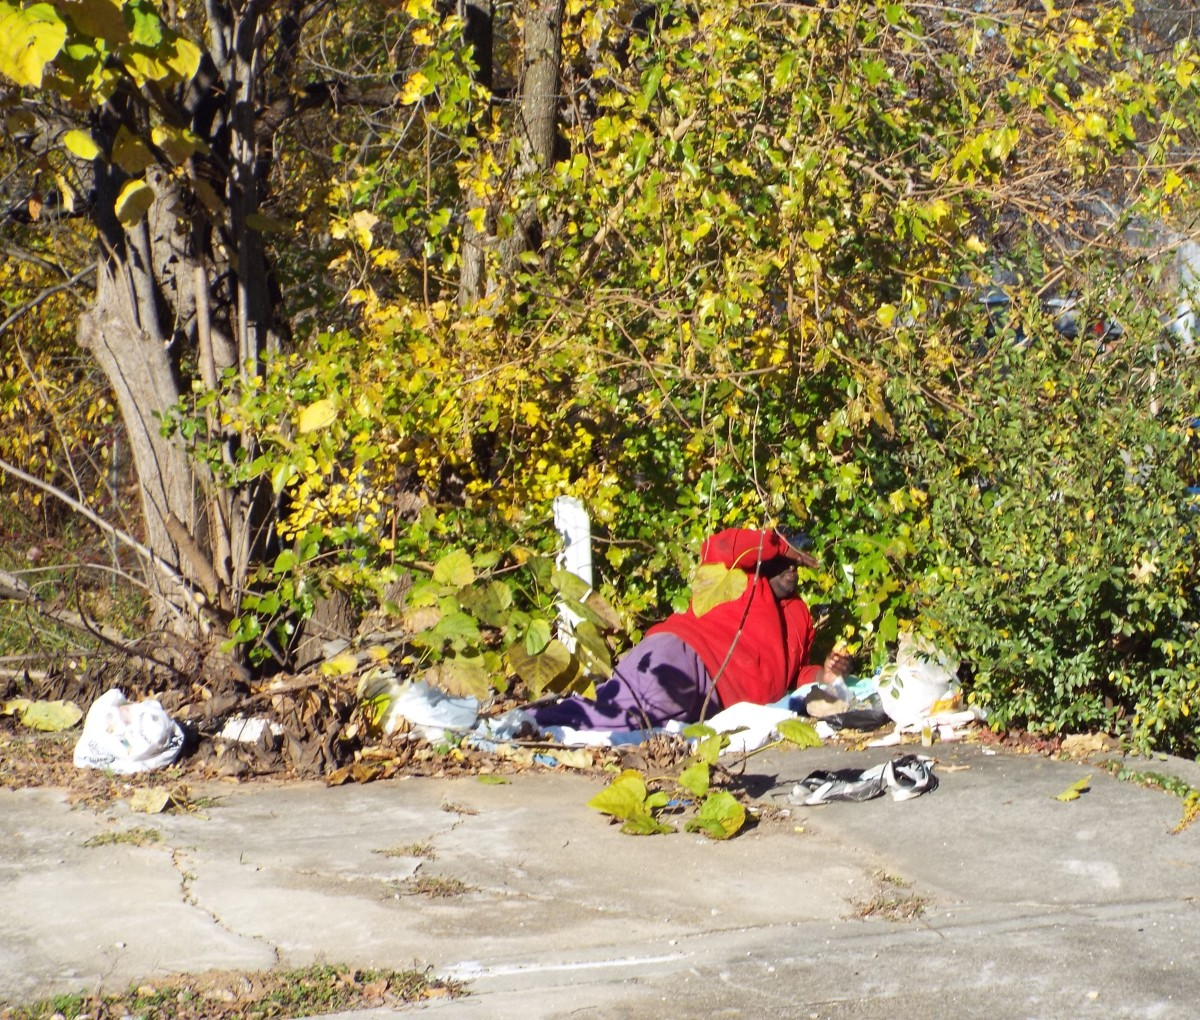 Just One Picture ofHomelessness